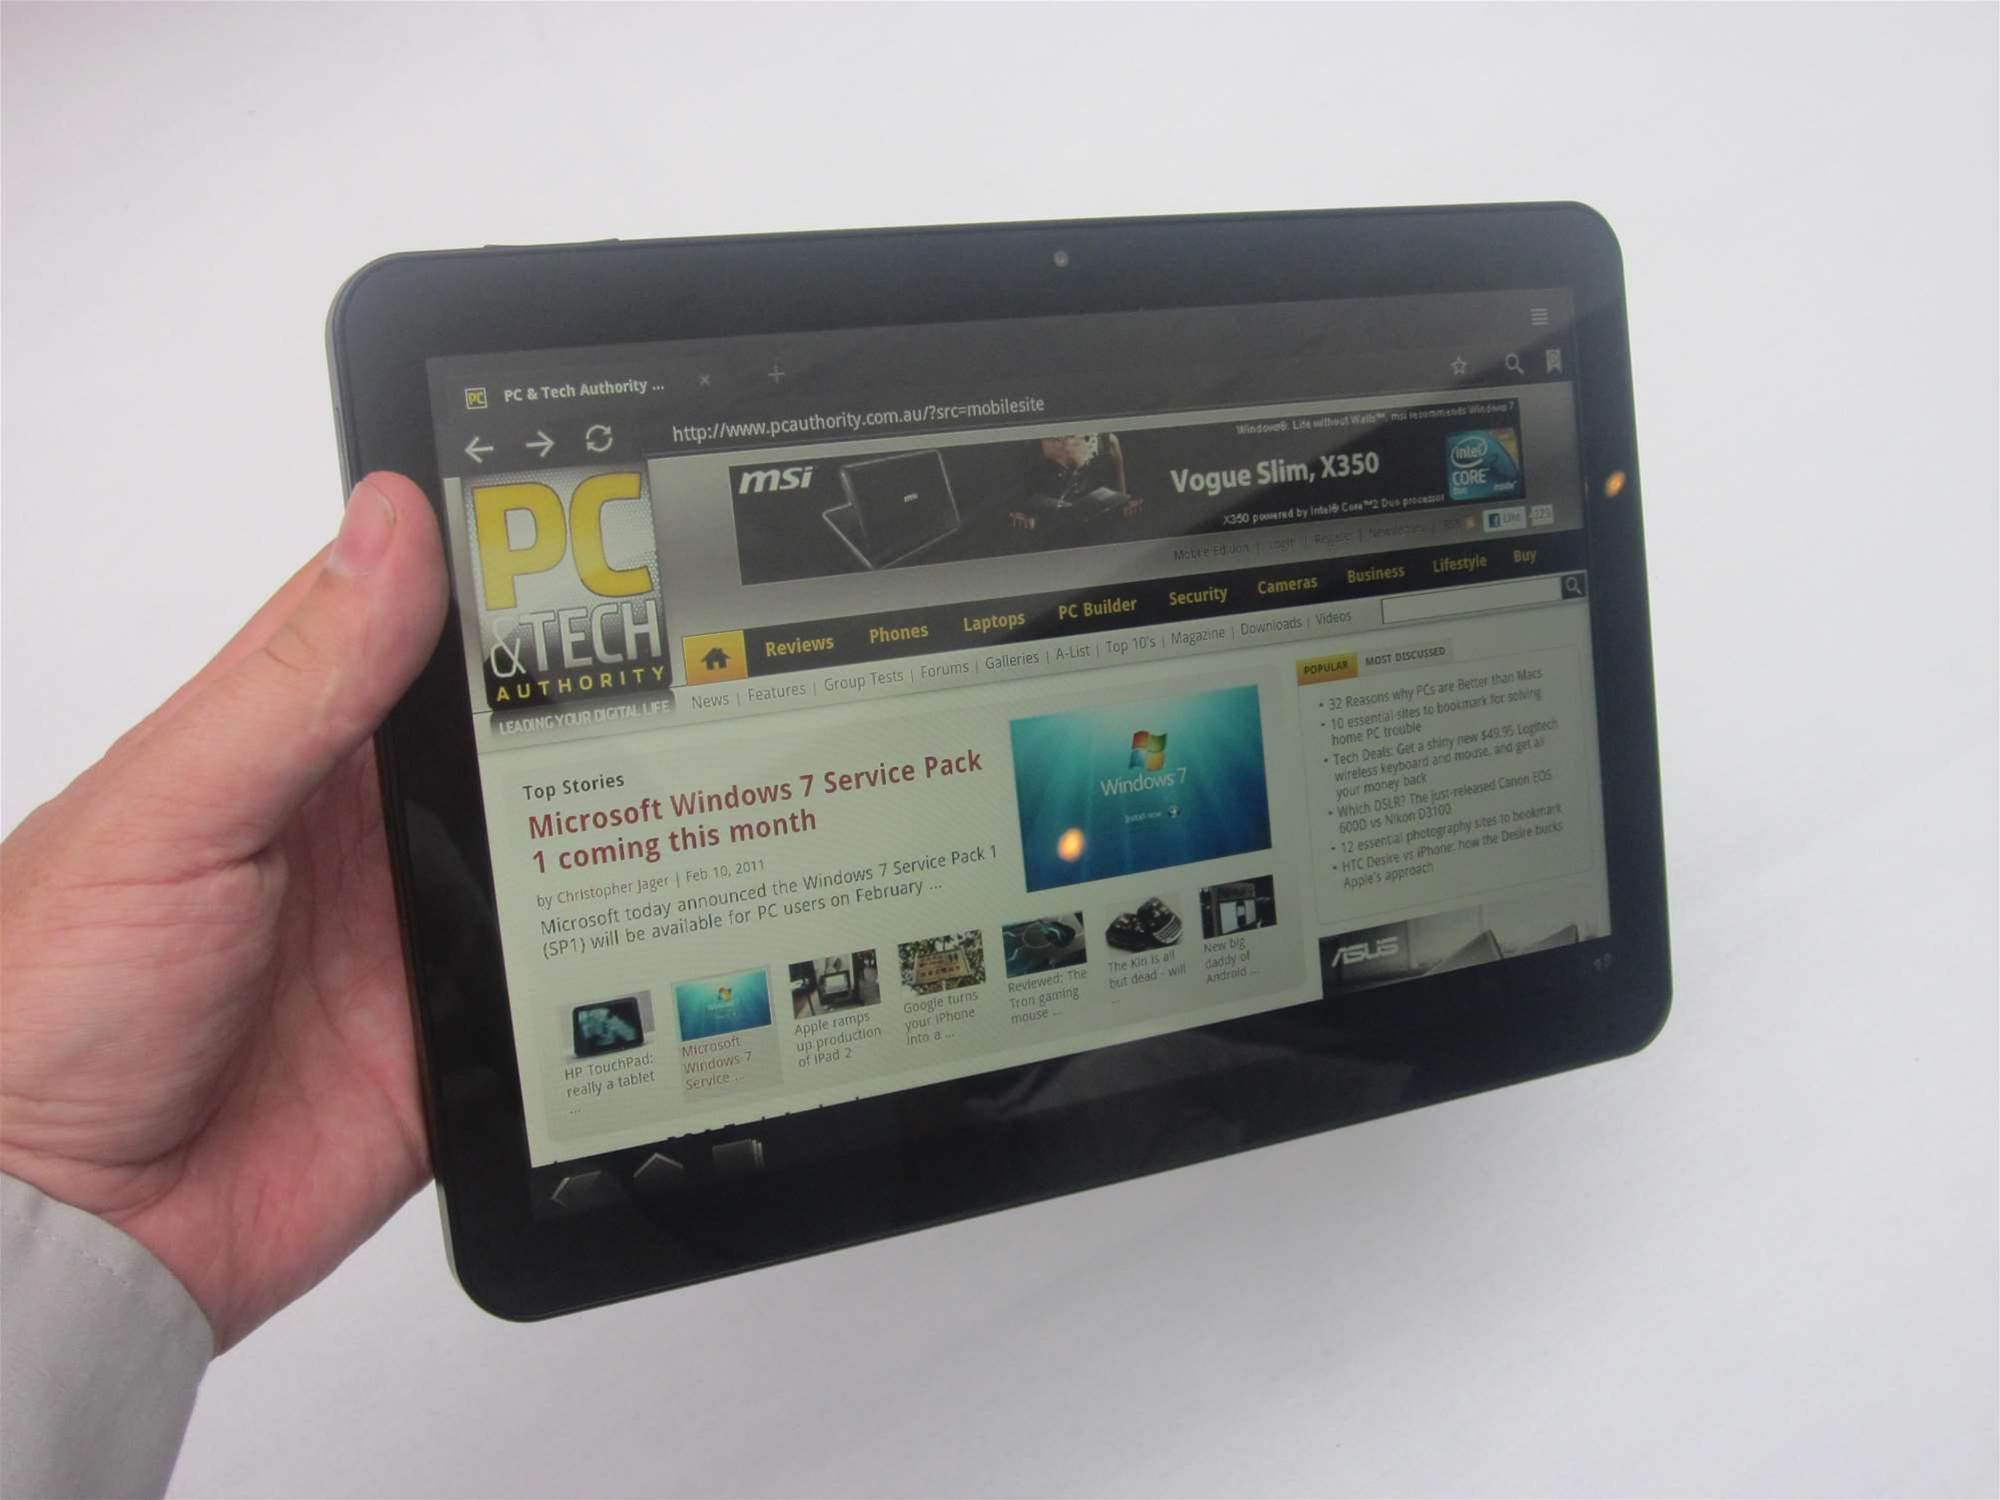 Hands on with Samsung Galaxy Tab 10.1 and Samsung Galaxy S II